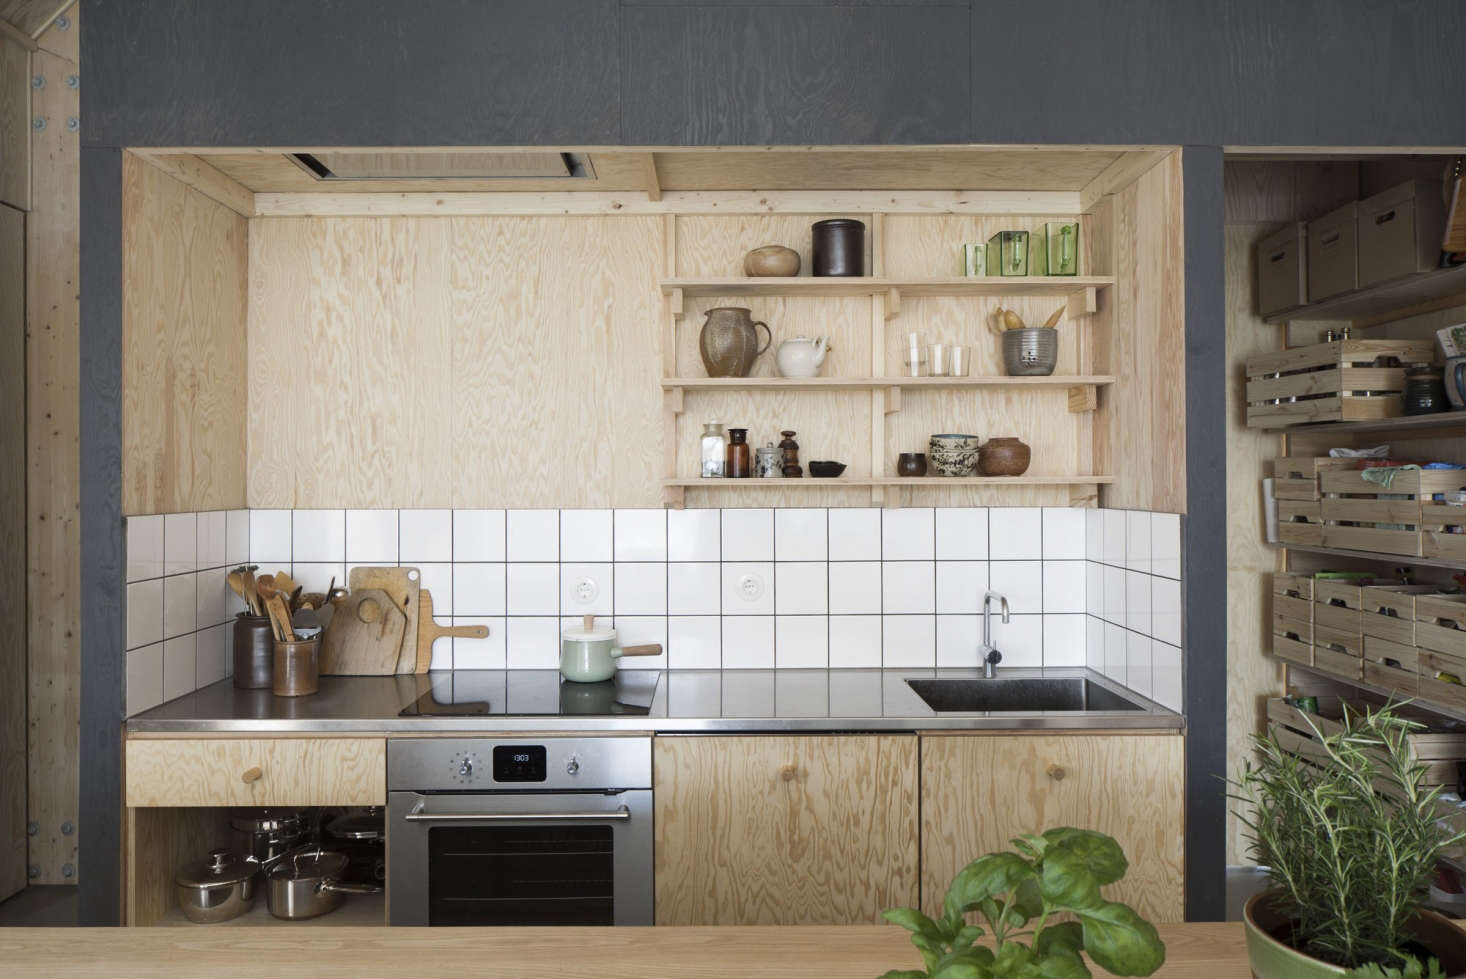 Back to basics: The latest trend in kitchen design is the kitchenette; compact kitchens with compact appliances pared back to the essentials. We're seeing them in full remodels, including this one fromFörstberg Ling, as well as in shop interiors and hotel suites.